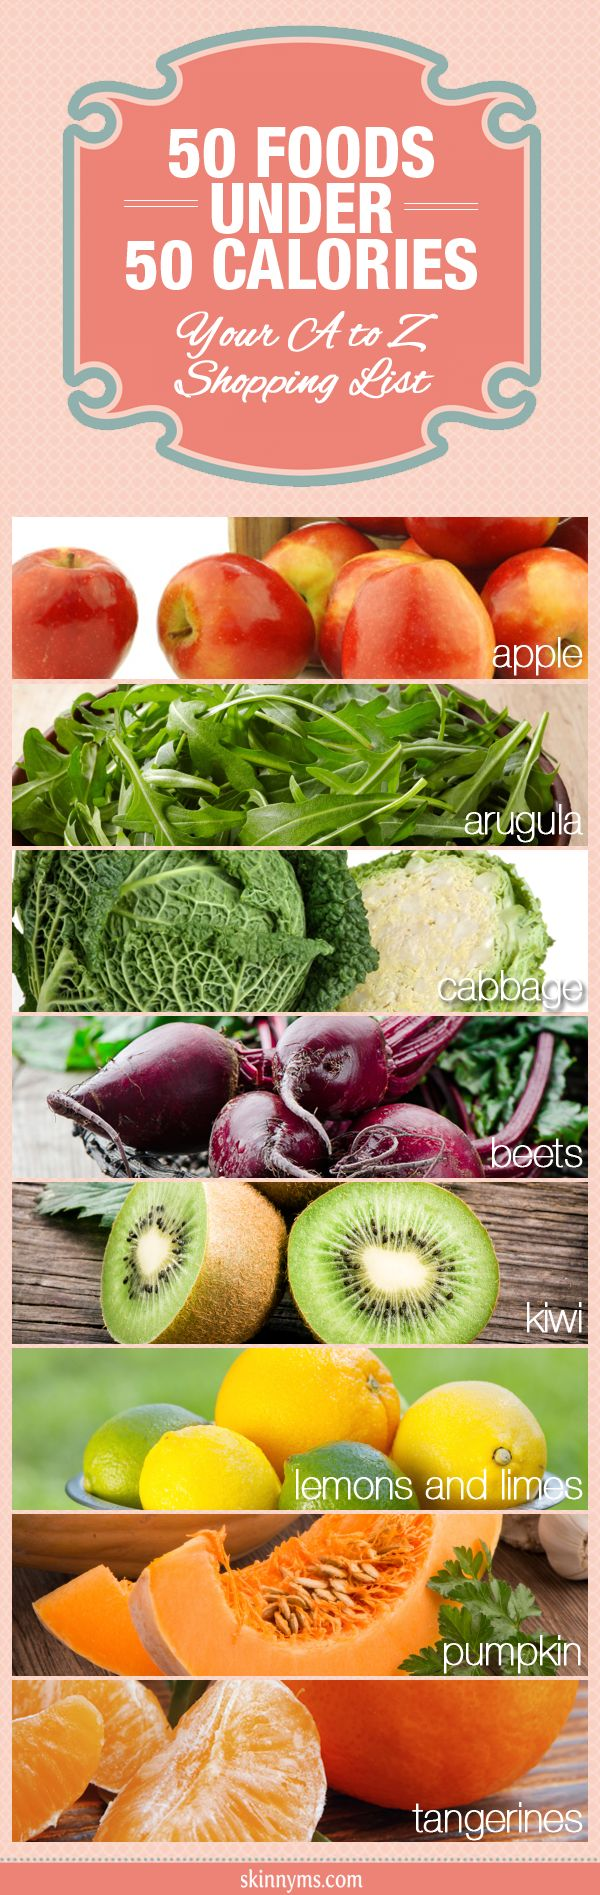 50 Foods Under 50 Calories, #delicious, #light, and #healthy.